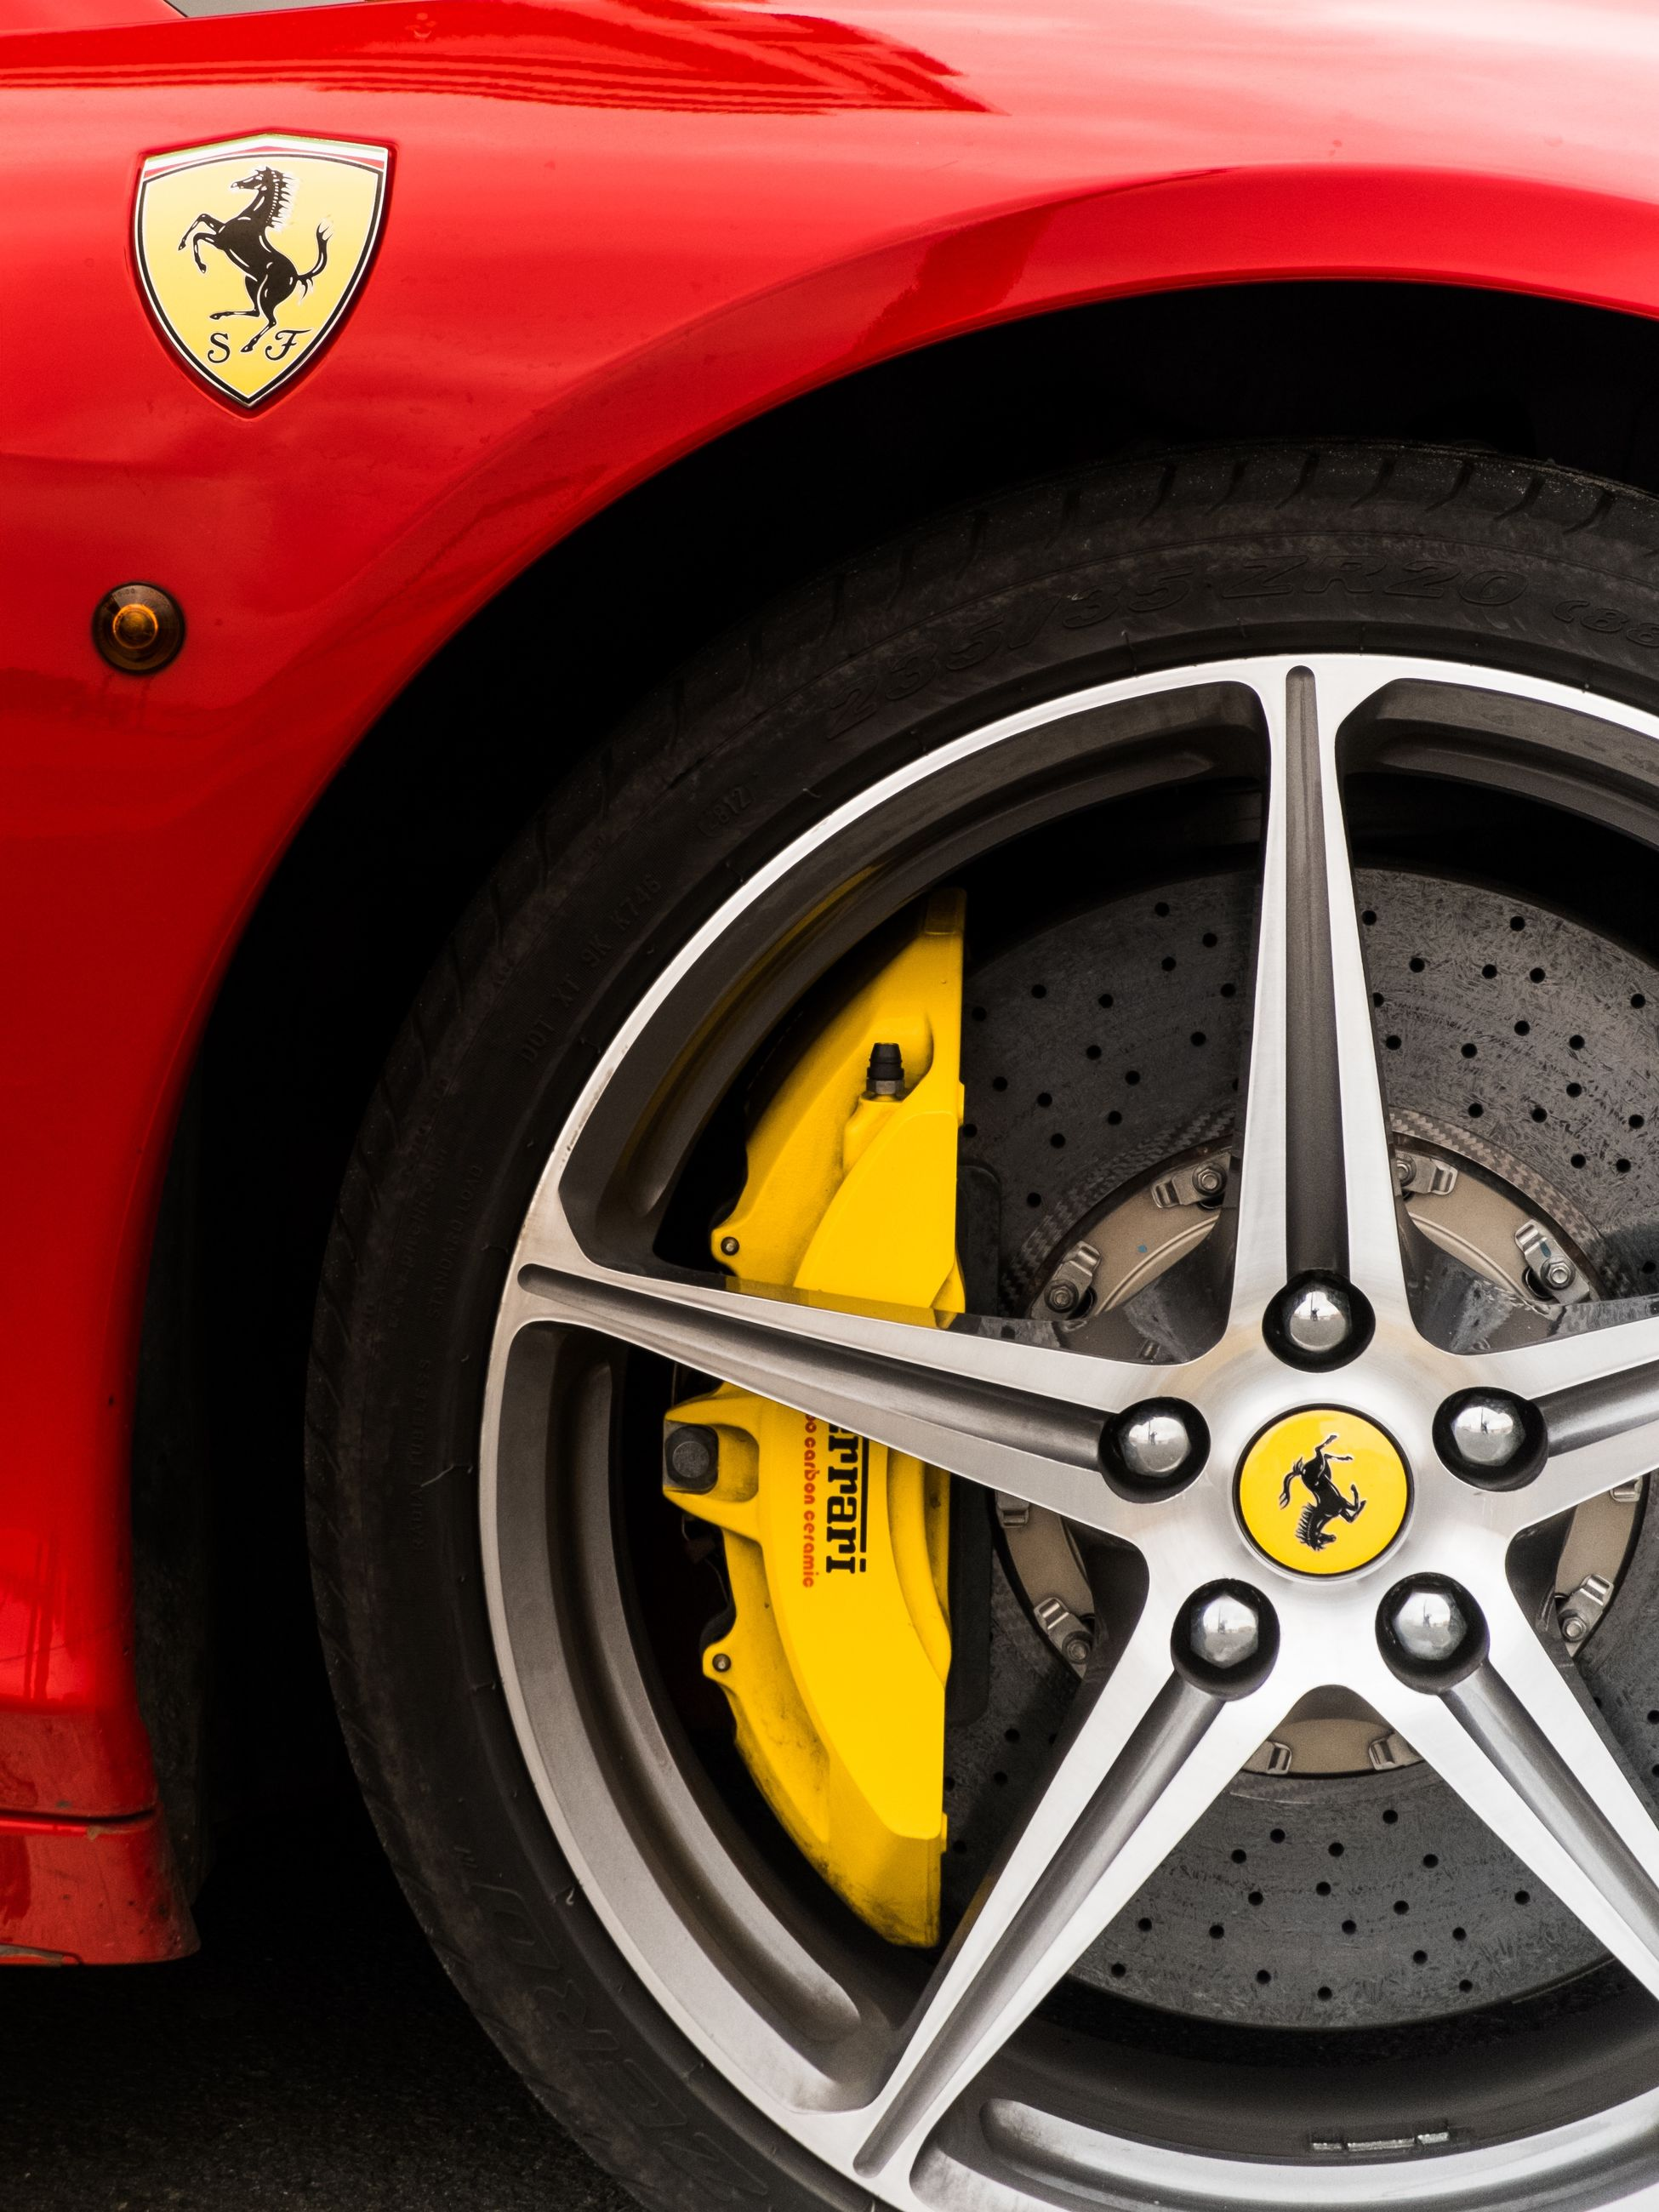 transportation, mode of transport, close-up, land vehicle, wheel, car, part of, metal, vehicle part, number, circle, old-fashioned, red, indoors, tire, high angle view, no people, machine part, metallic, old